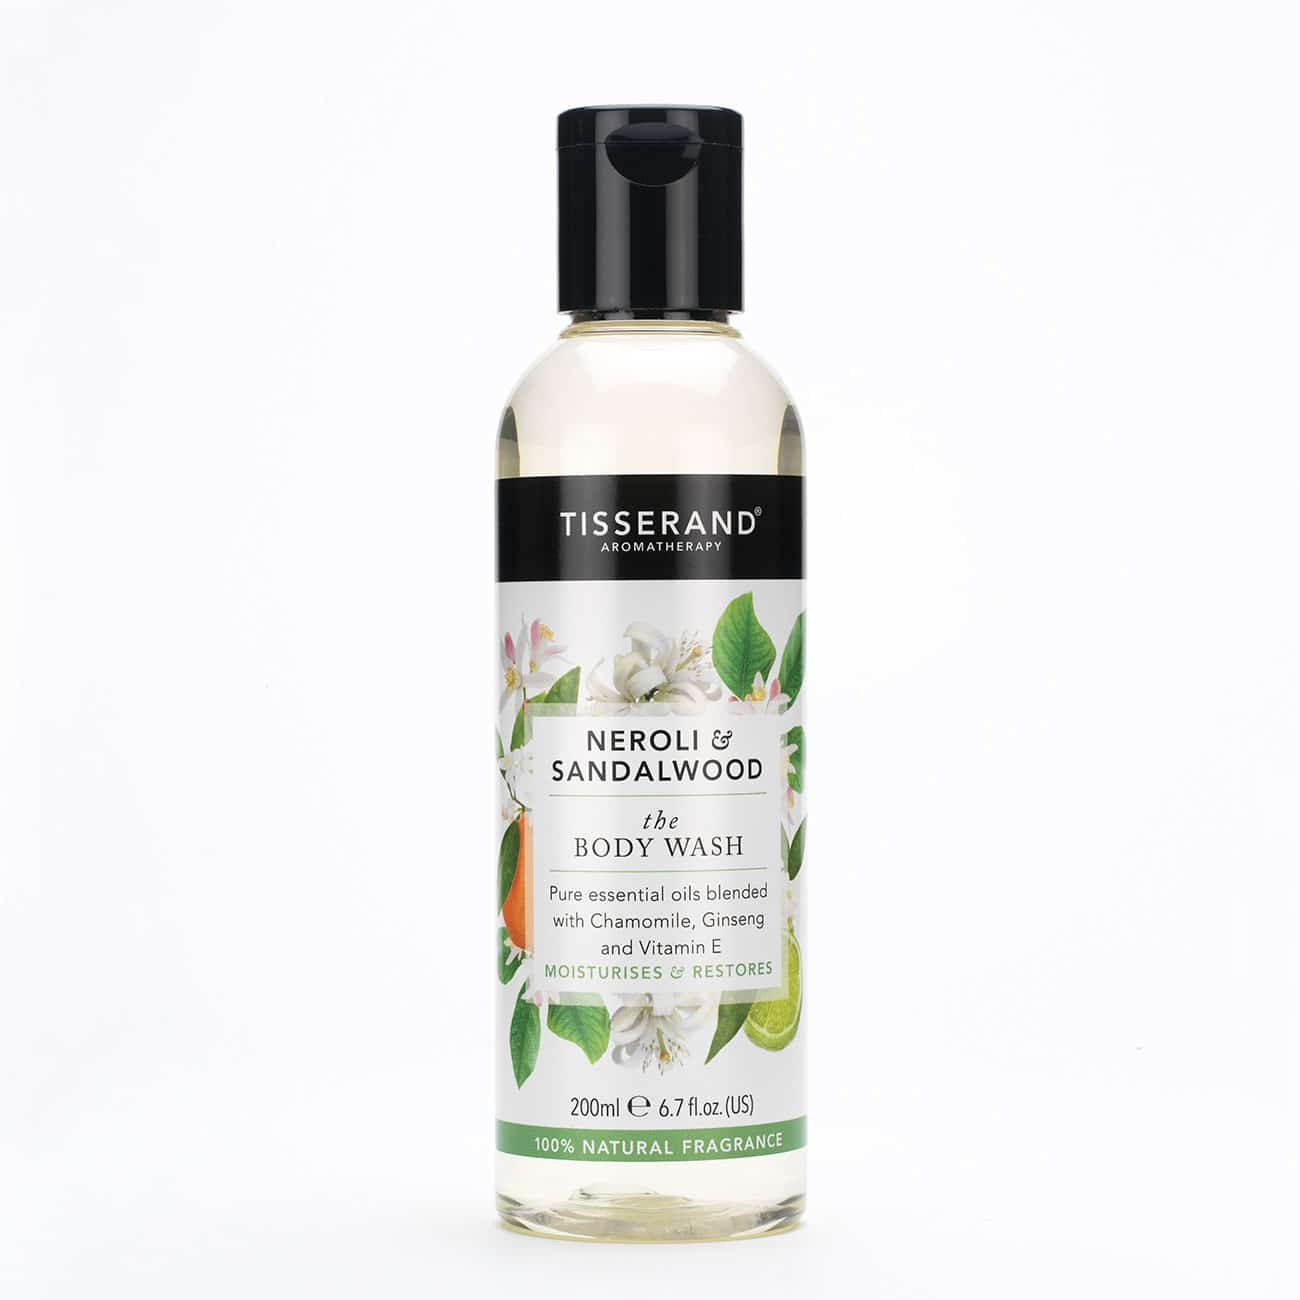 Tisserand-Aromatherapy-Neroli-and-Sandalwoood-Body-Wash